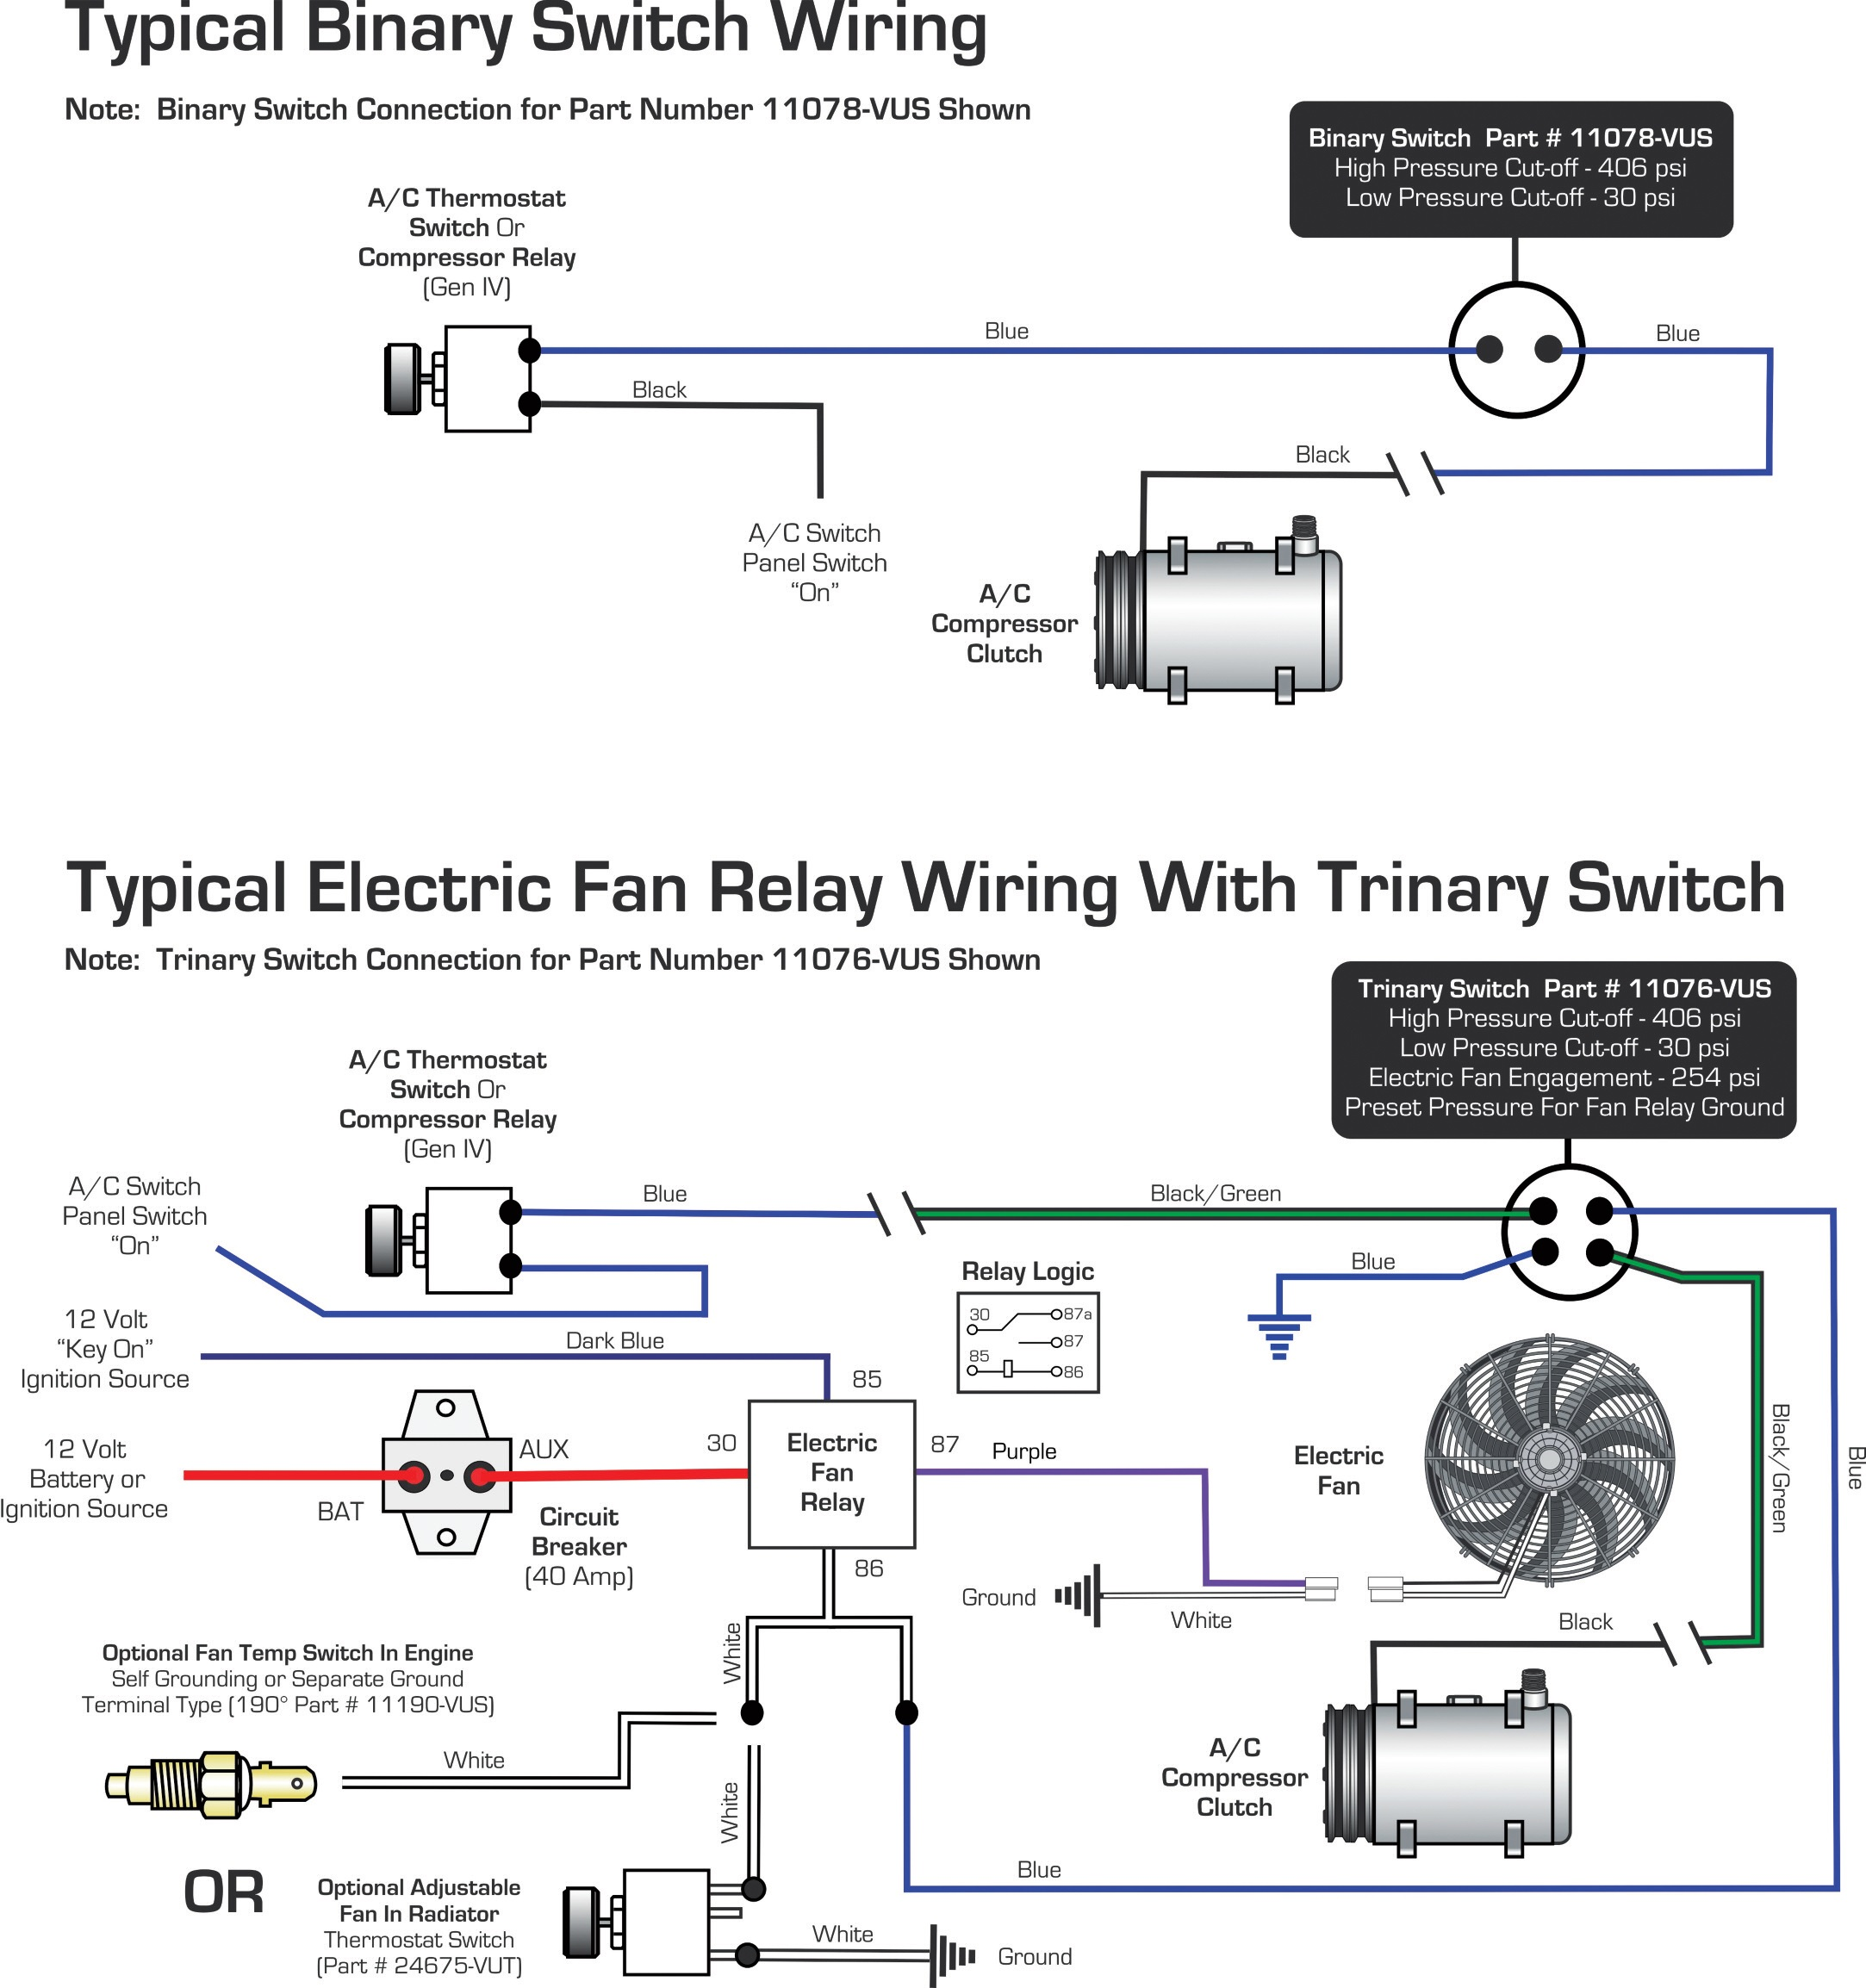 vintage air blog archive wiring diagrams binary switch trinary rh vintageair com Hunter Fan Switch Wiring Diagram AC Trinary Switch Wiring Diagram